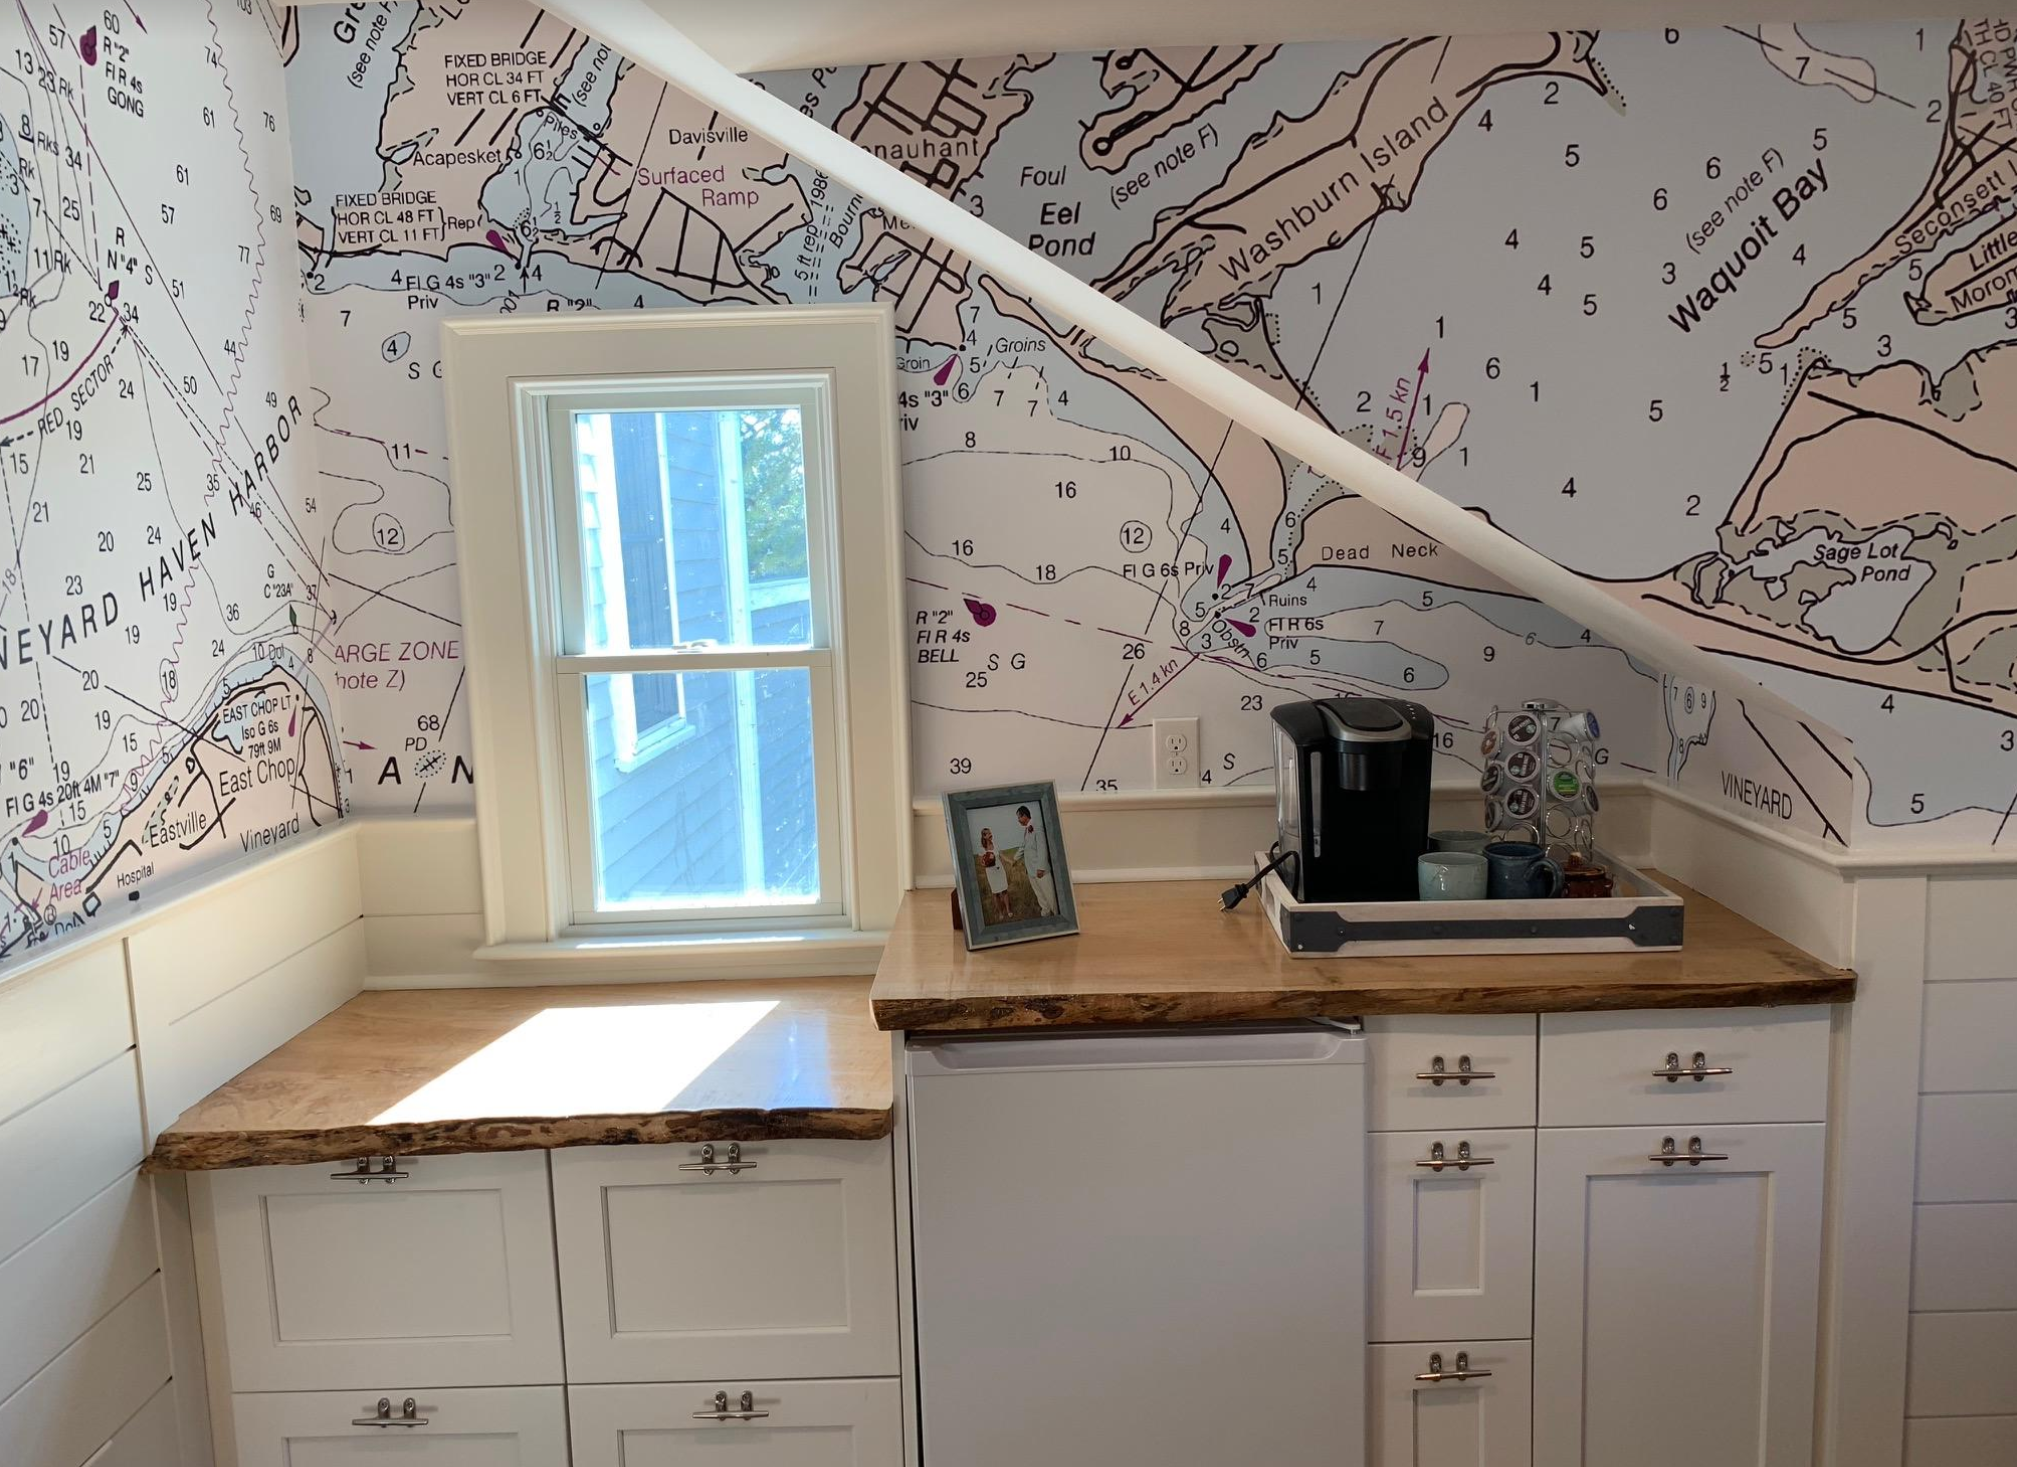 Another view of Beth's design in the little office. As you can see by the cutouts, and wall irregularities, this was a complex job. Everyone was hapy with the result.